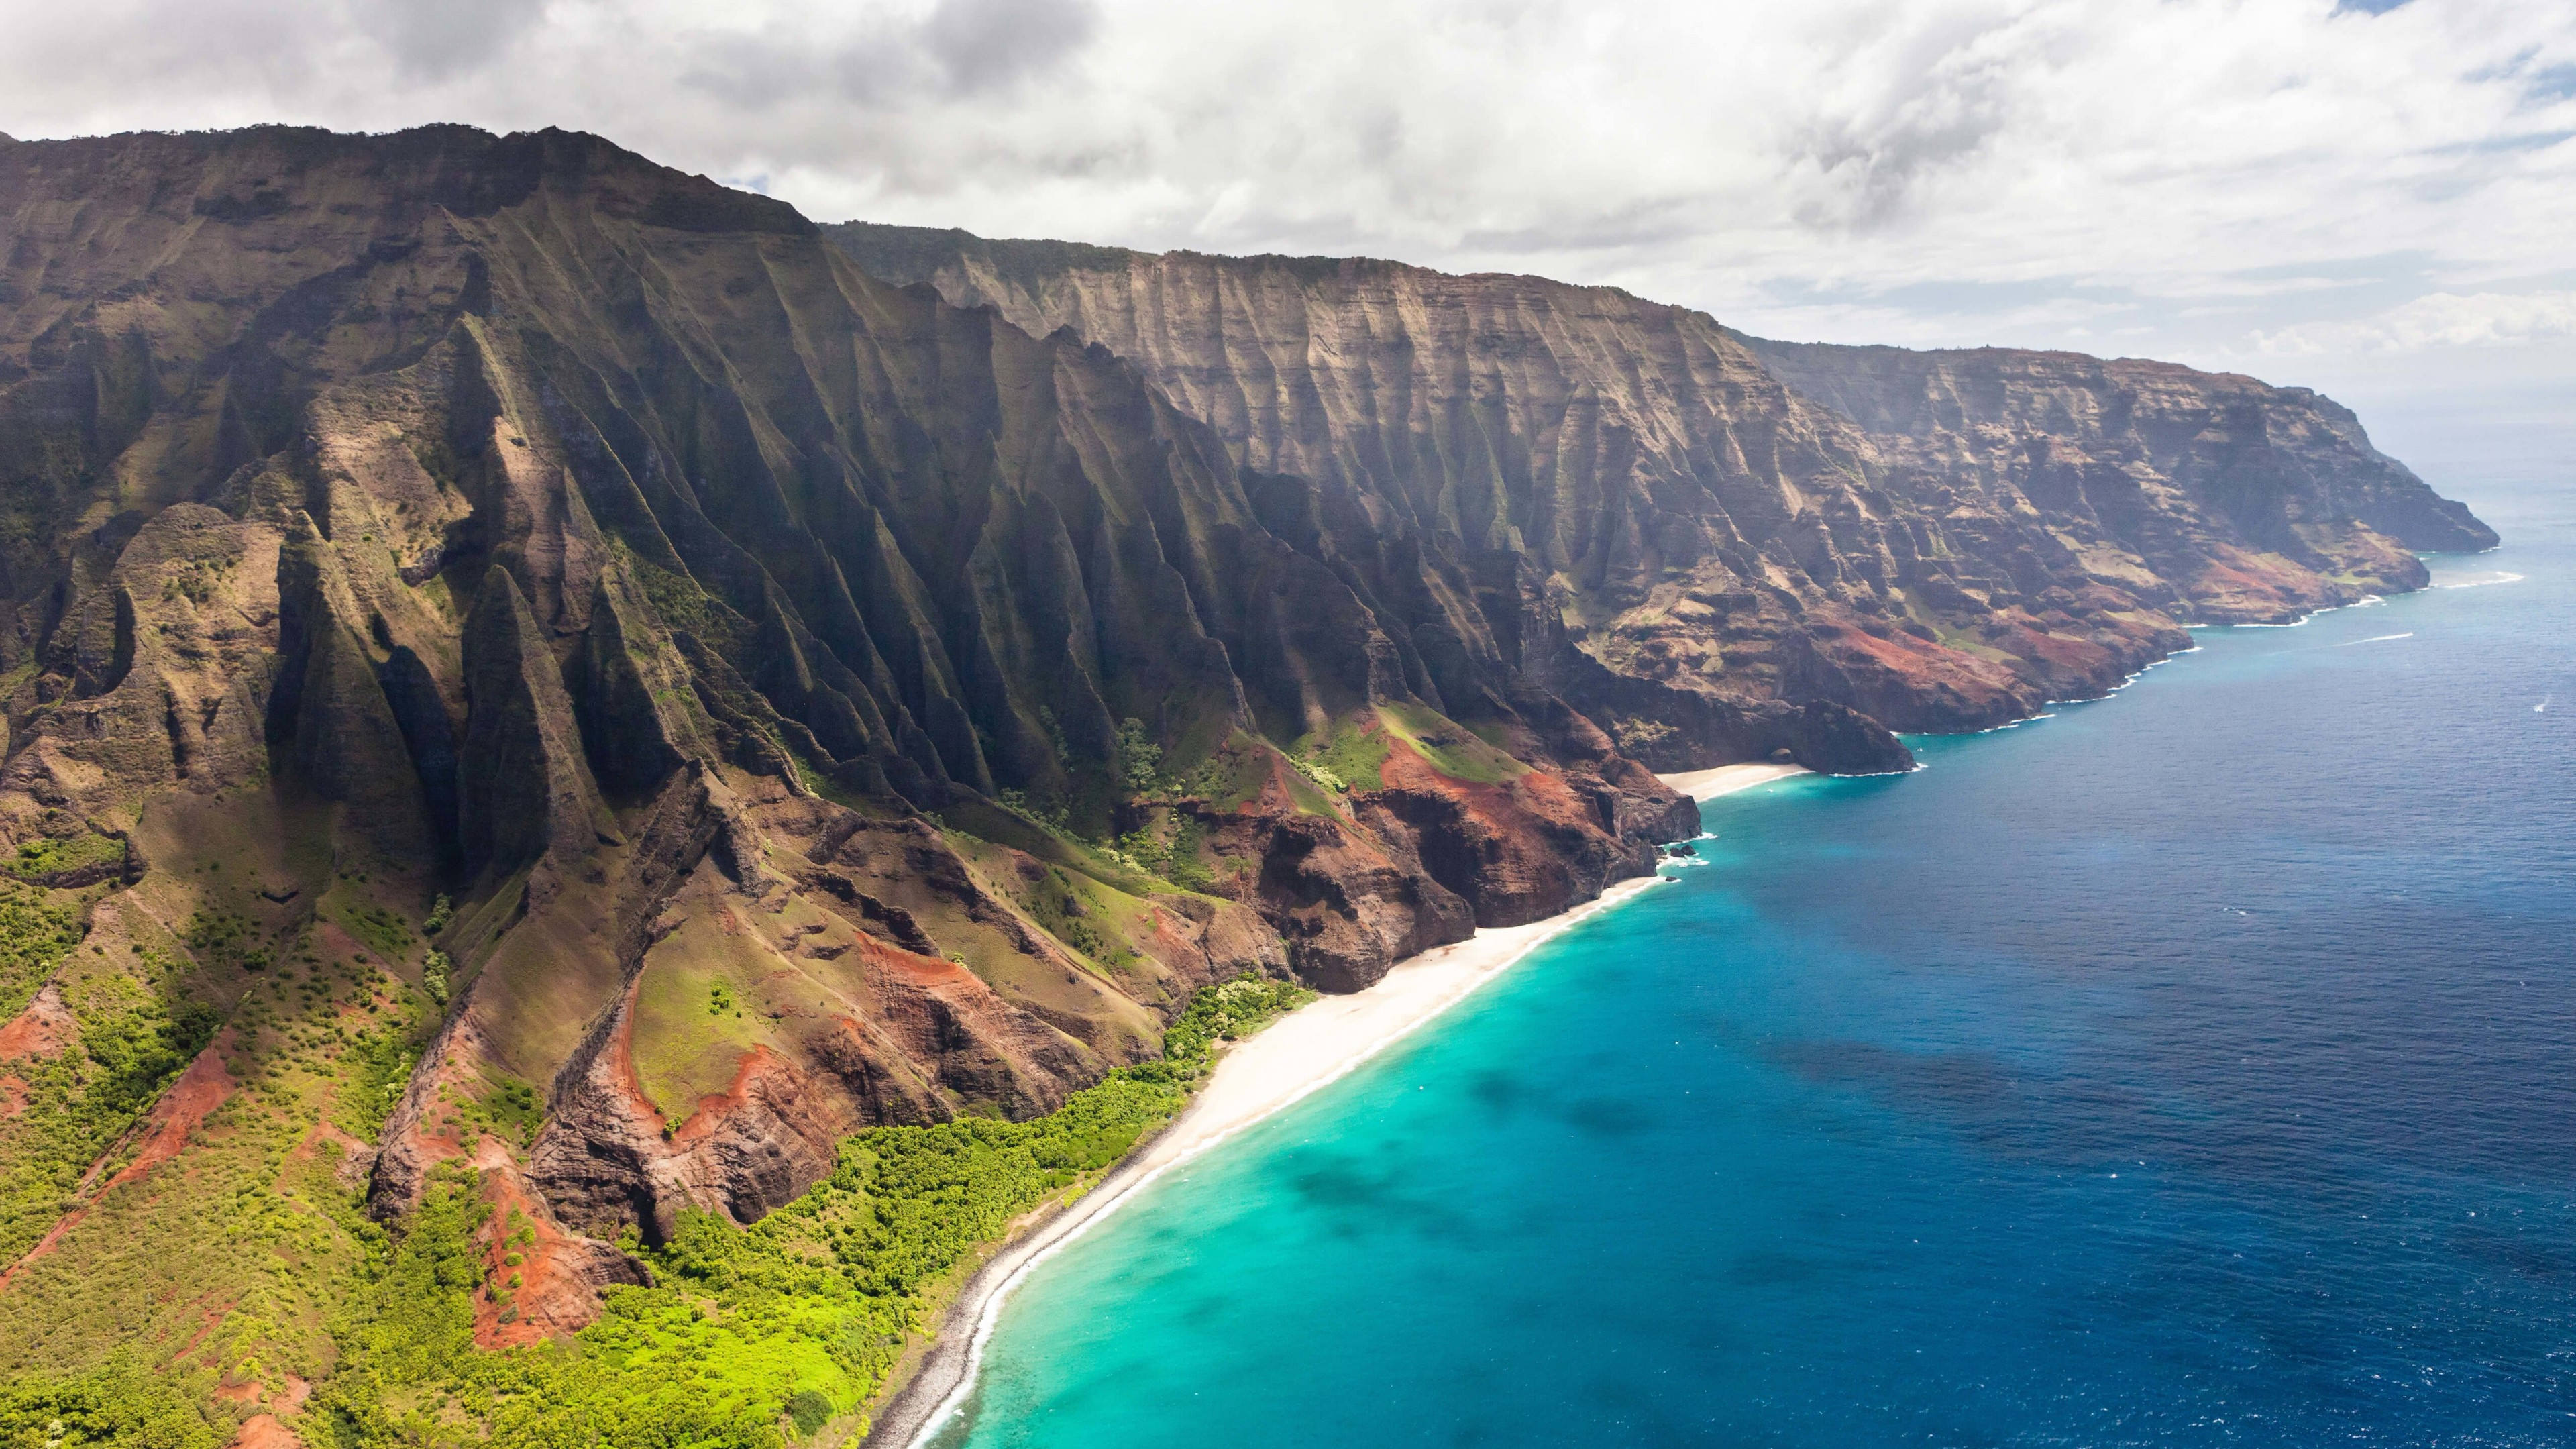 Na Pali Coast Wallpaper for Desktop 4K 3840x2160